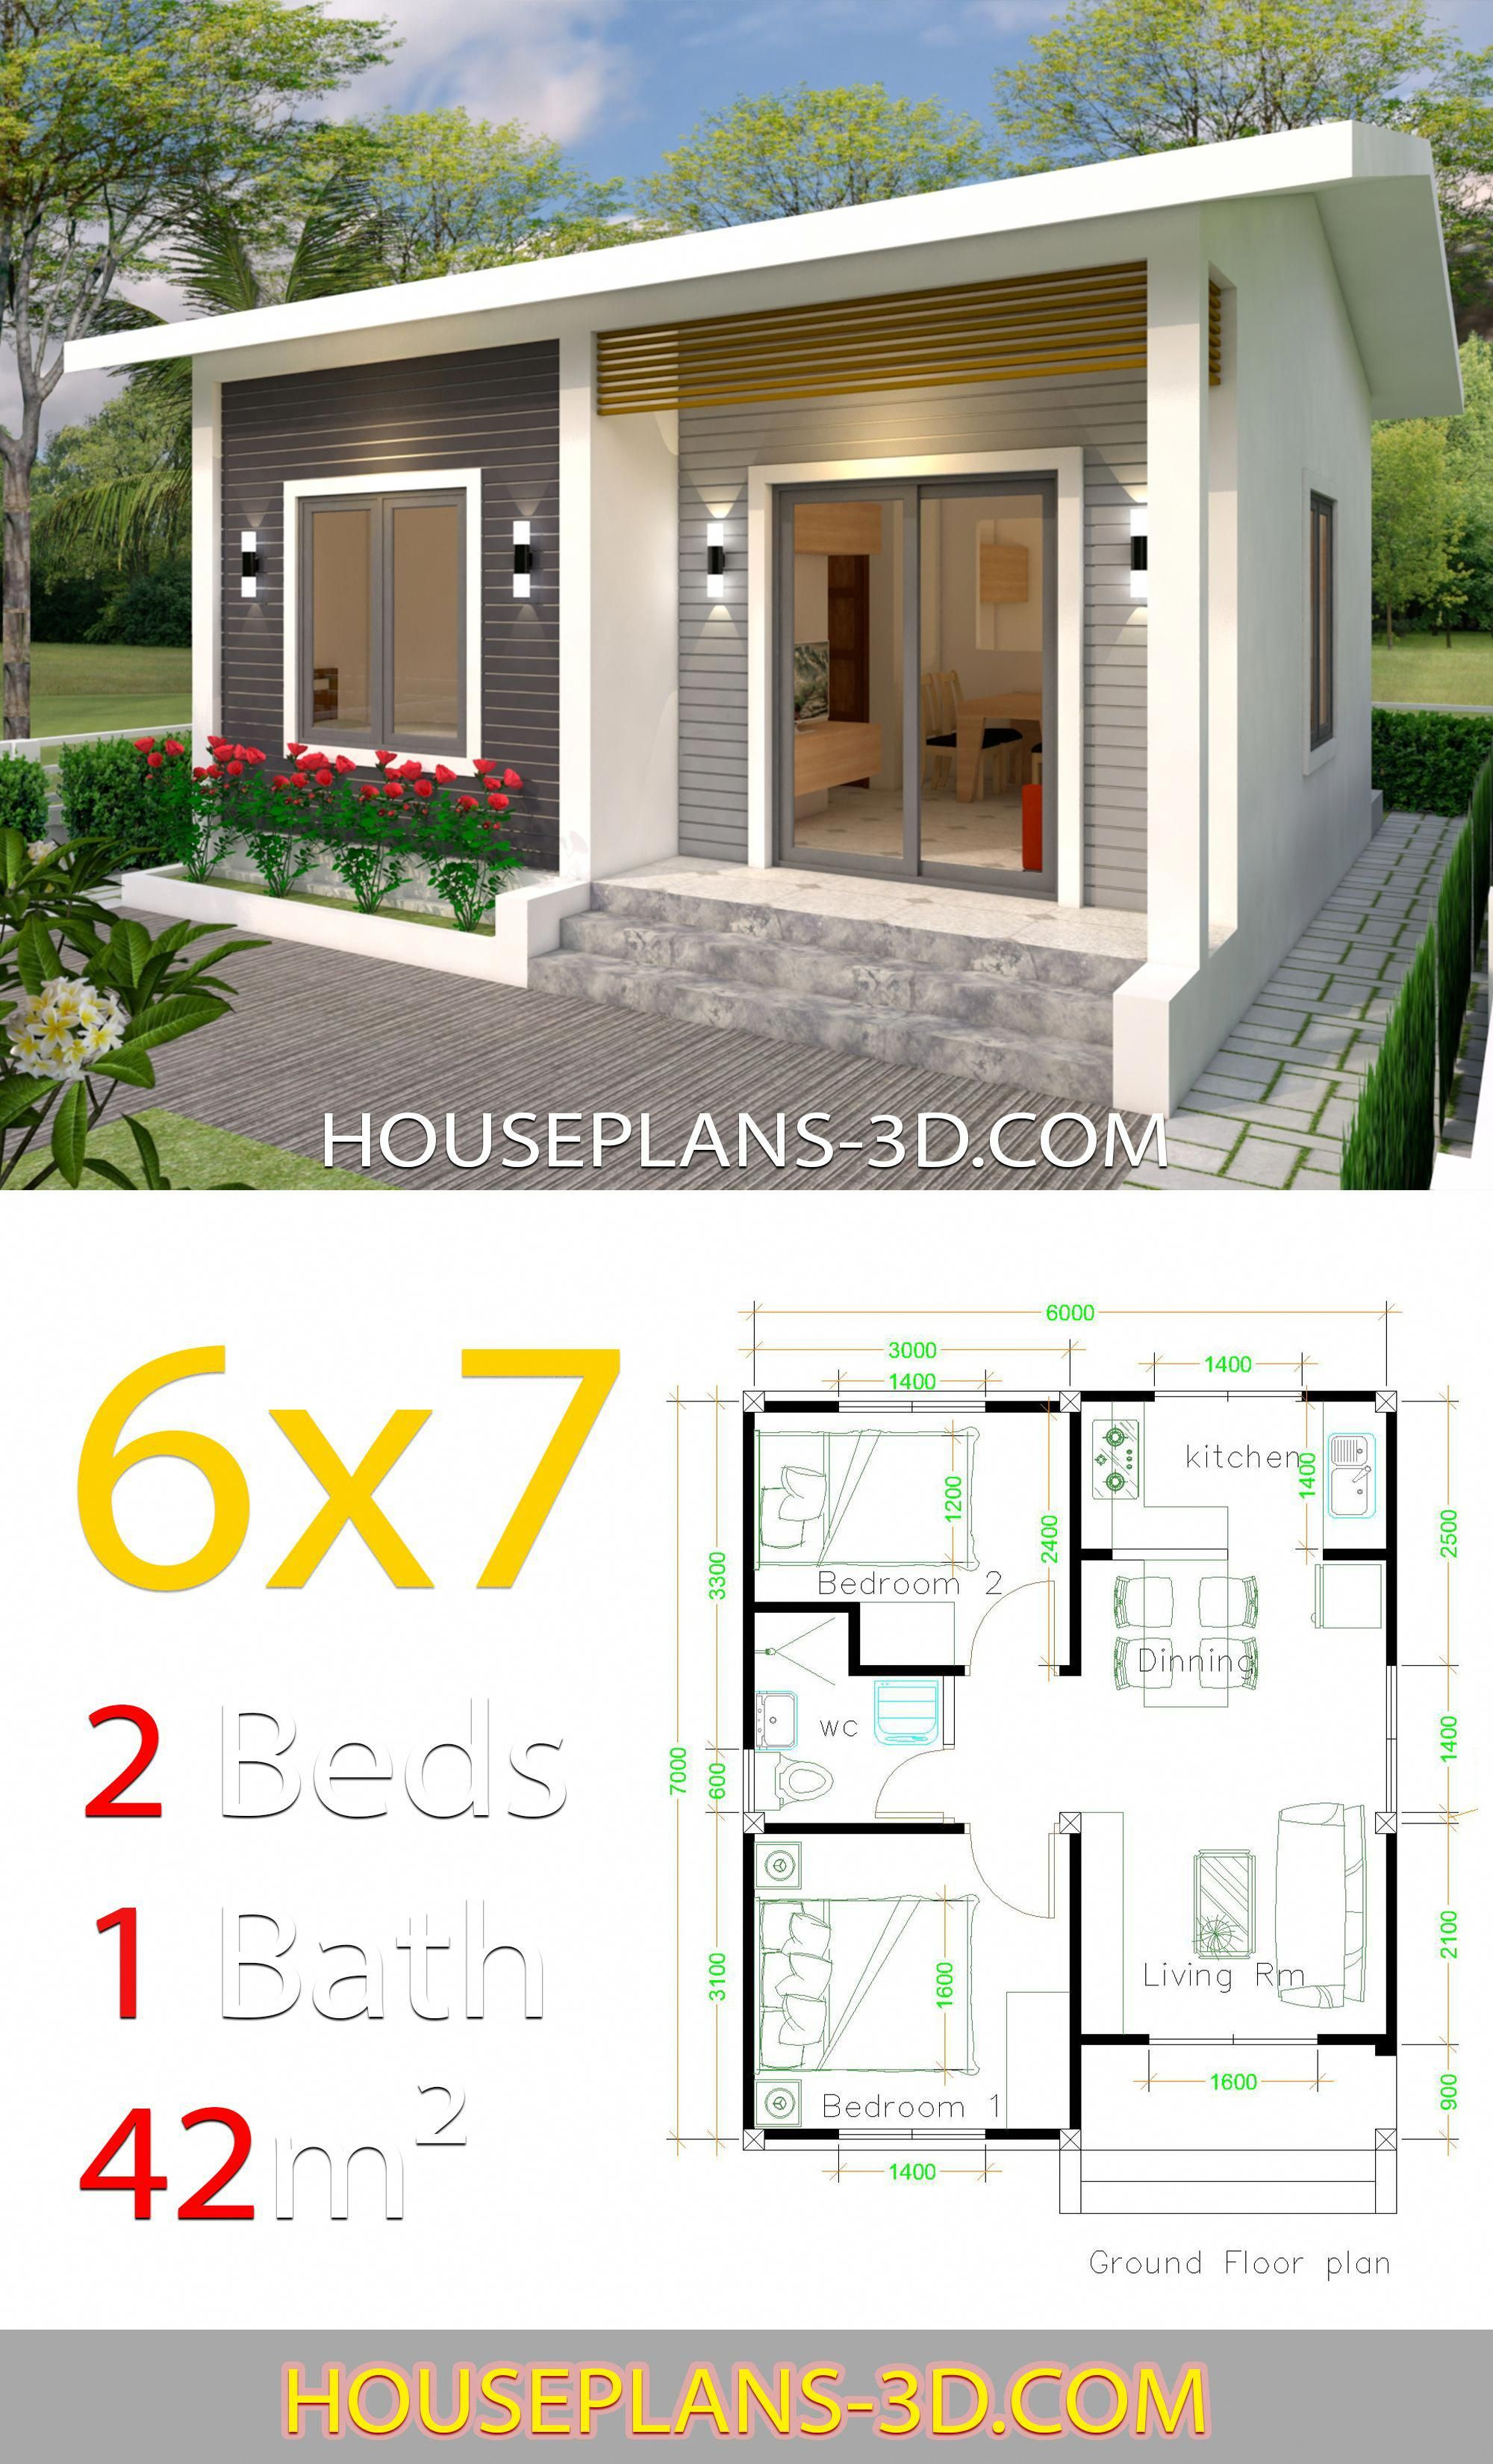 House Design 6x7 With 2 Bedrooms House Plans 3d Singlewill Wills Willsforsingles Willsforwomen Willsformen Willsforsin Di 2020 Rumah Indah Rumah Pedesaan Arsitektur